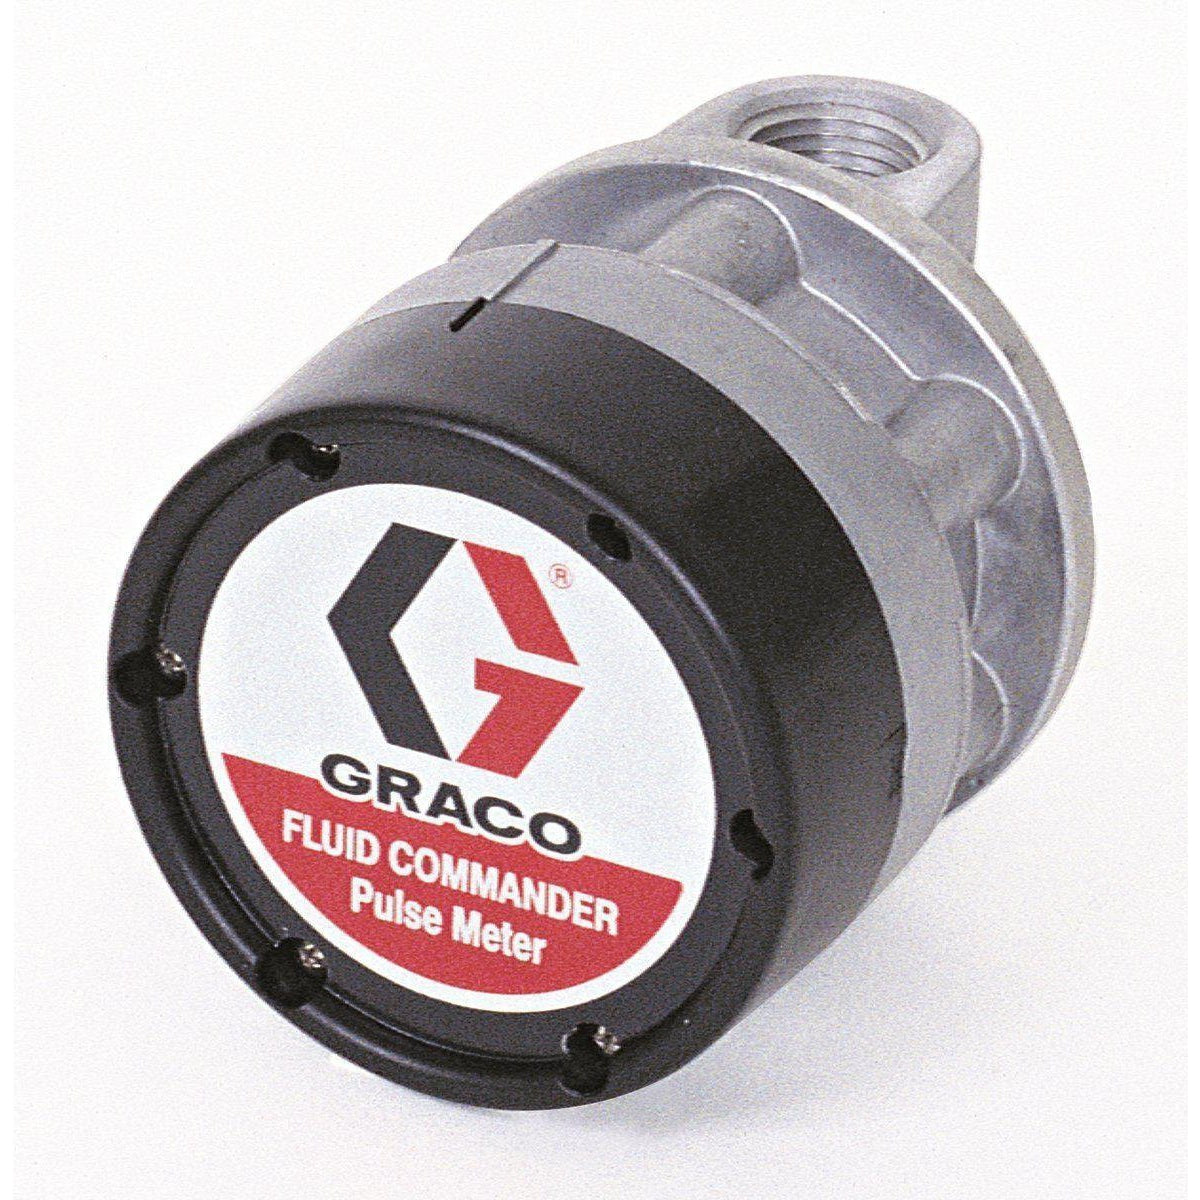 Graco 238618 In-Line Meter With Pulse Output (Pints, Quarts, Gallons, Liters) - Fireball Equipment Ltd.